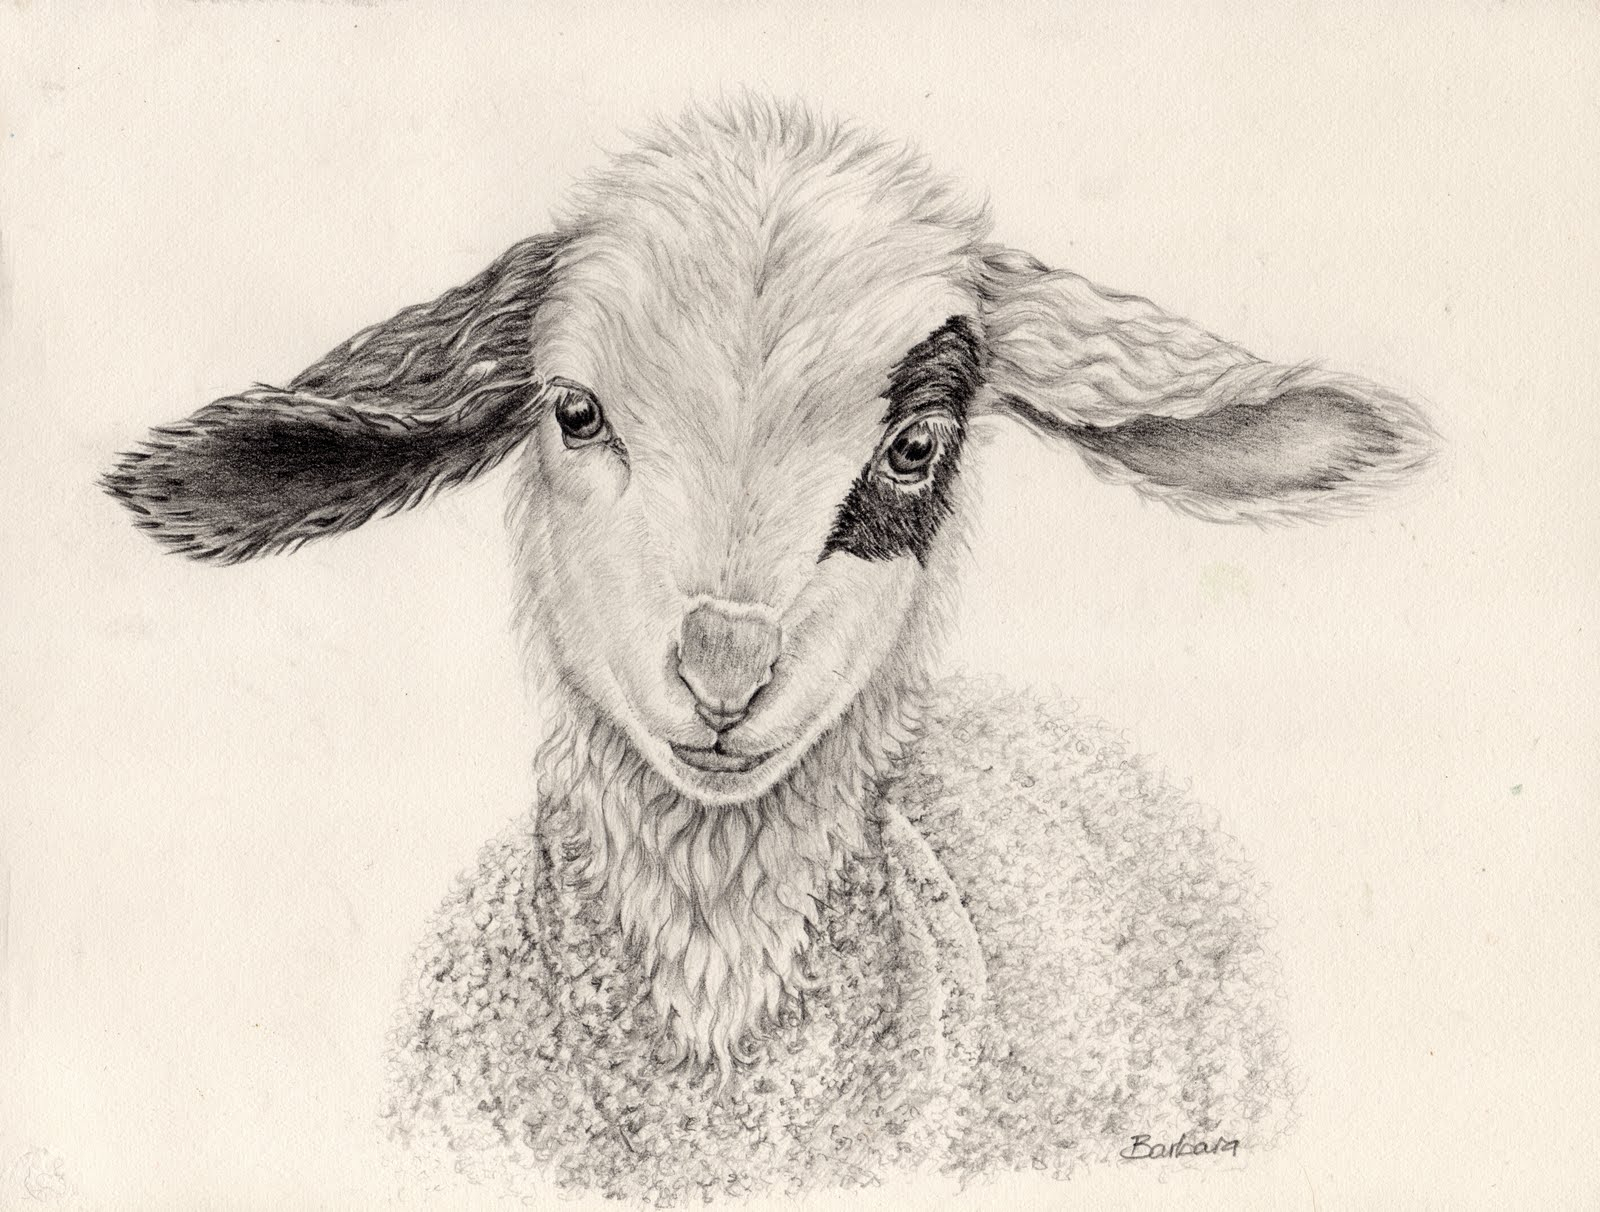 Line Drawing Of Sheep Face : Lamb drawing at getdrawings free for personal use